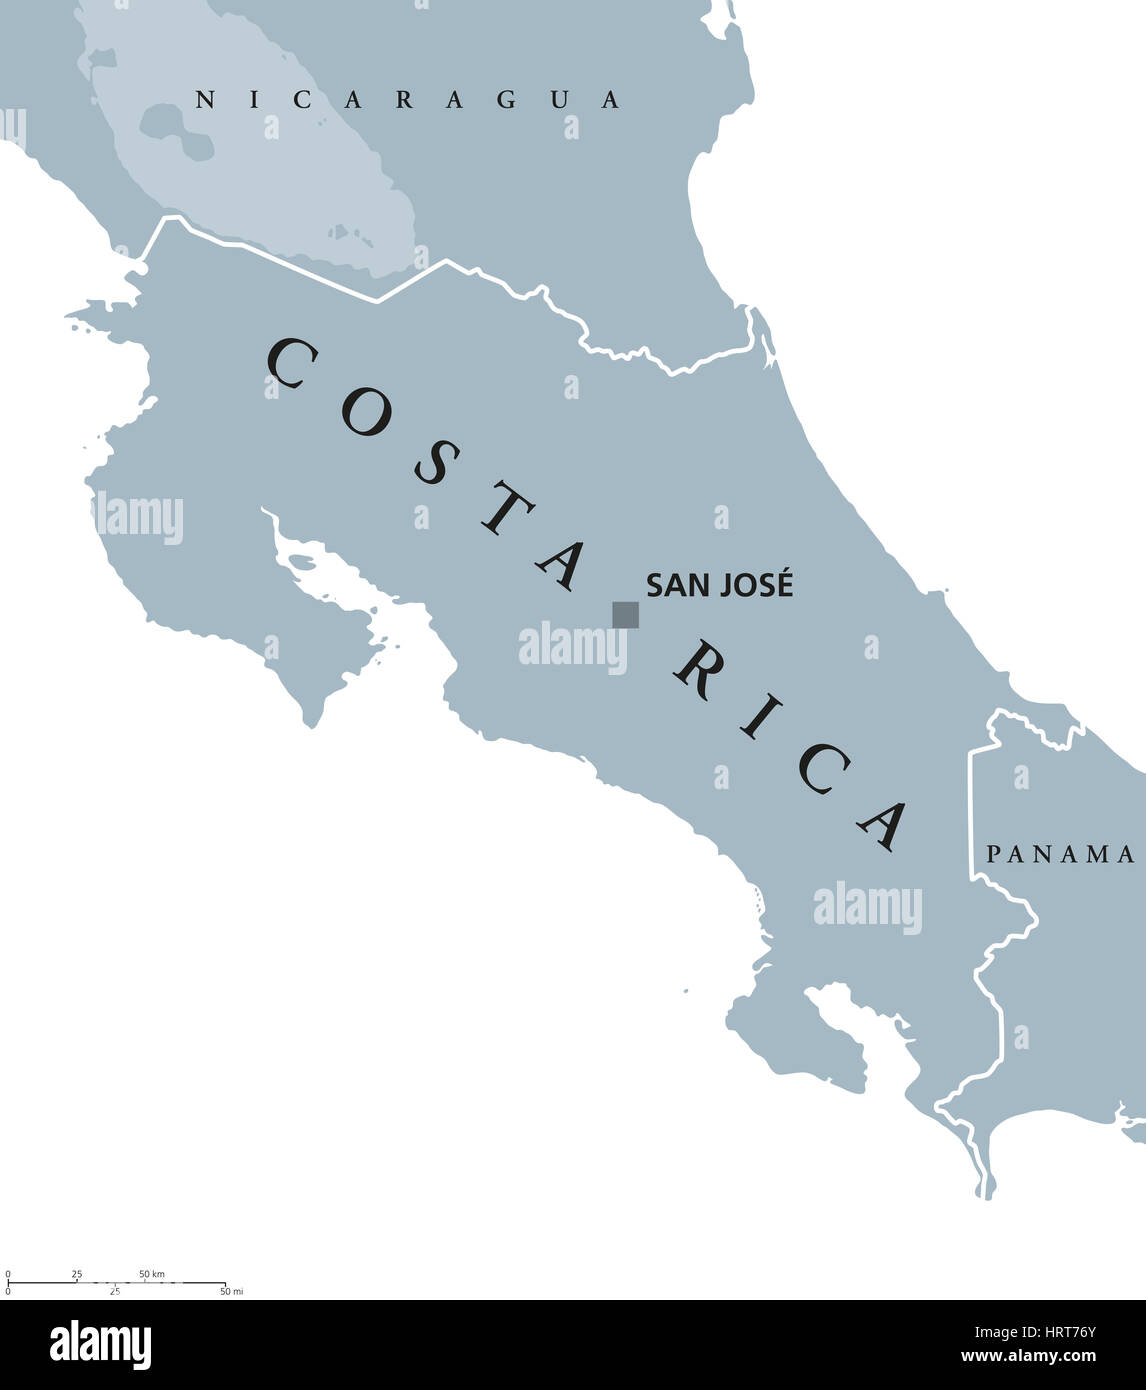 Map Costa Rica Stock Photos & Map Costa Rica Stock Images - Alamy